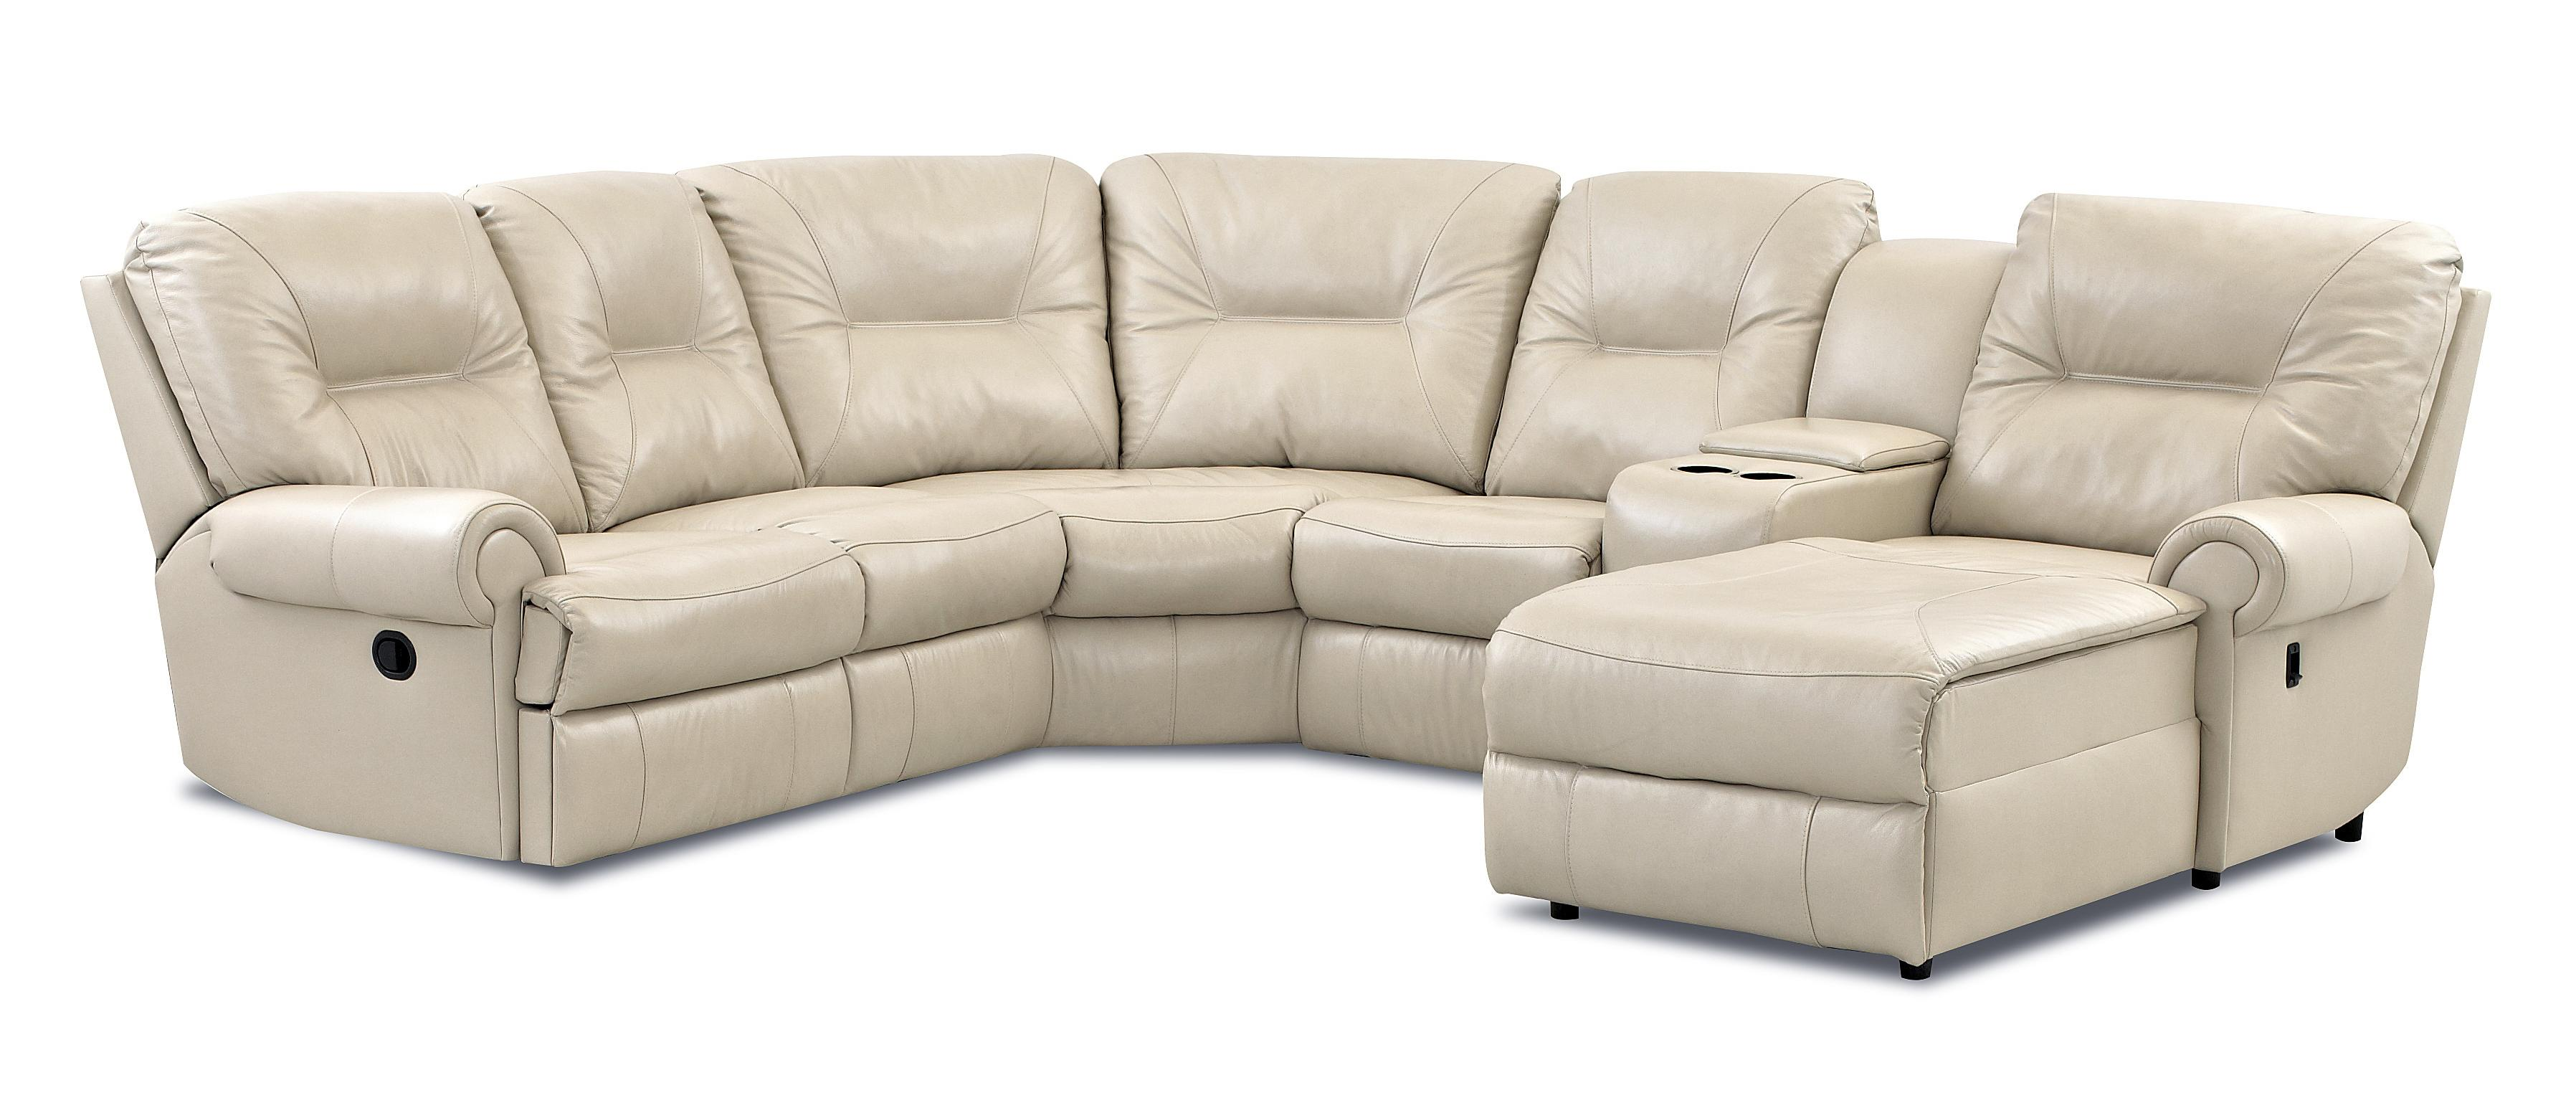 Roadster Traditional Reclining Sectional Sofa by Klaussner at Van Hill Furniture